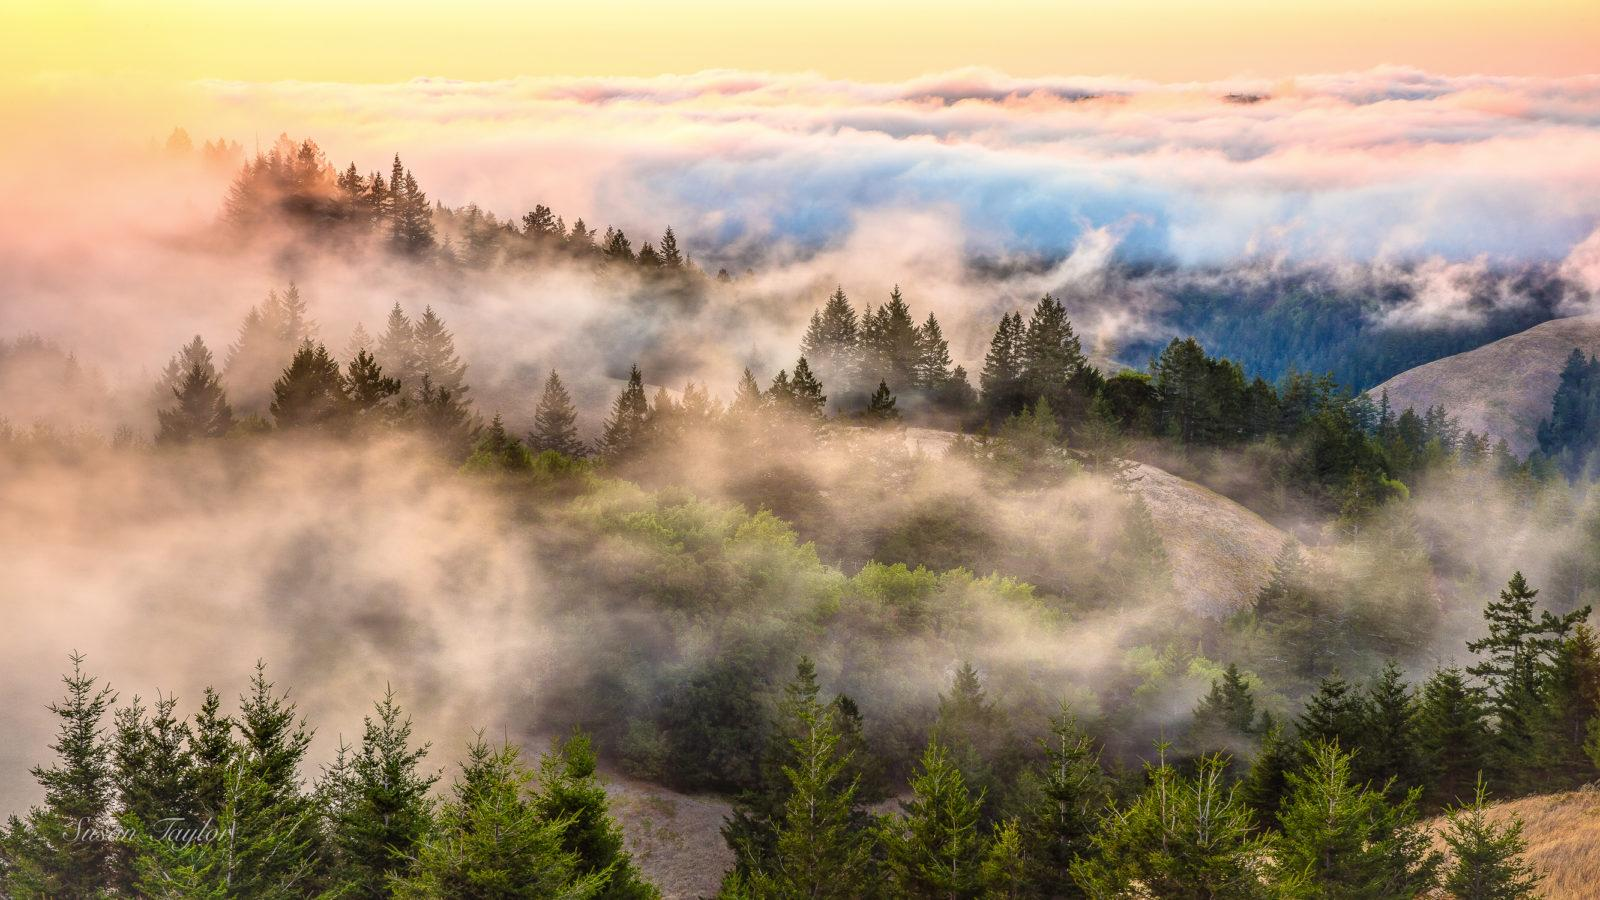 """Today's Photo Of The Day is """"Coastal Fog Over Mount Tamalpais"""" by Susan Taylor. Location: Mount Tamalpais State Park, CA."""